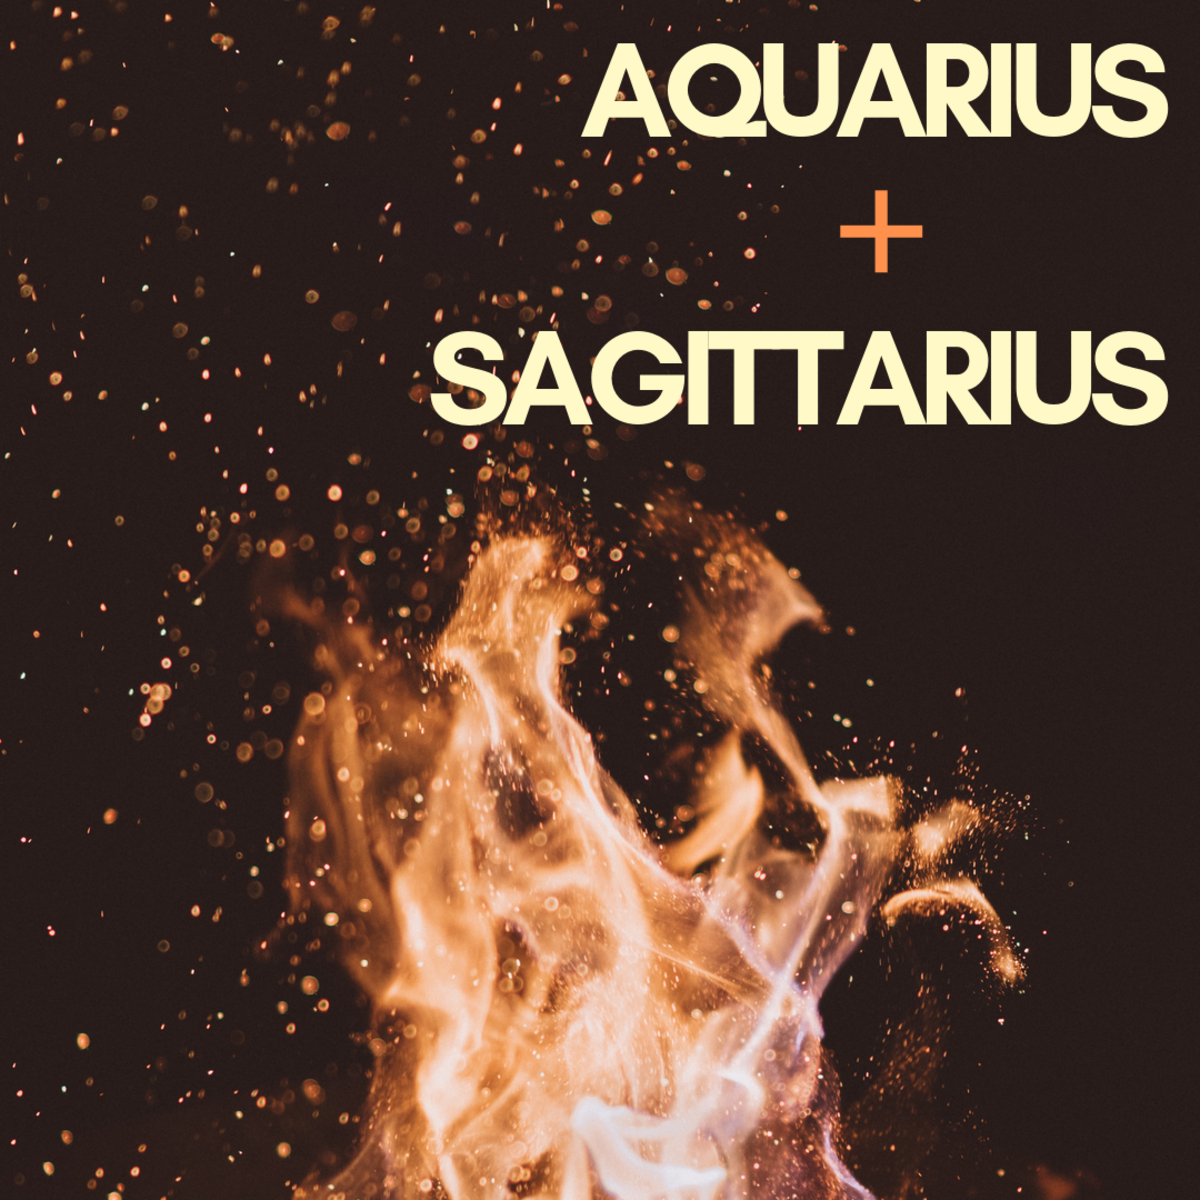 Where wind and fire meet, there are sure to be sparks. Read on to find out what makes Aquarius and Sagittarius such a perfect match.